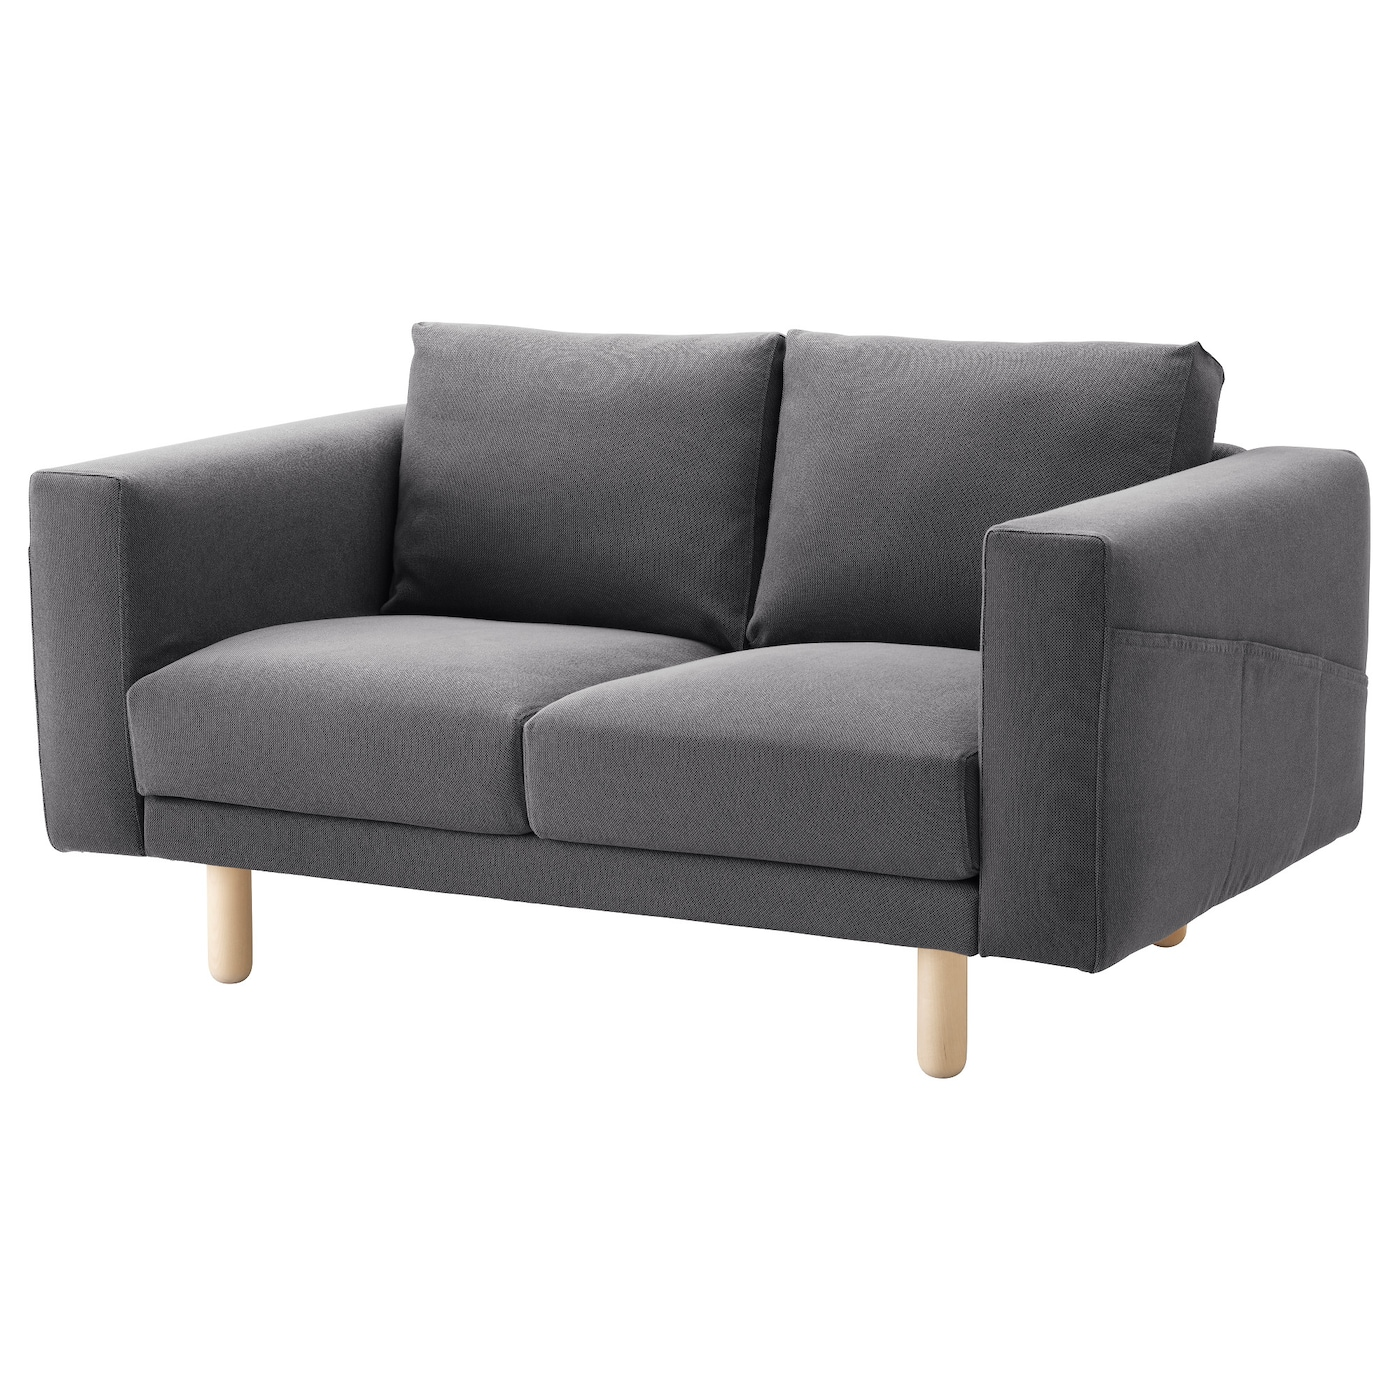 Ikea Norsborg 2 Seat Sofa 10 Year Guarantee Read About The Terms In